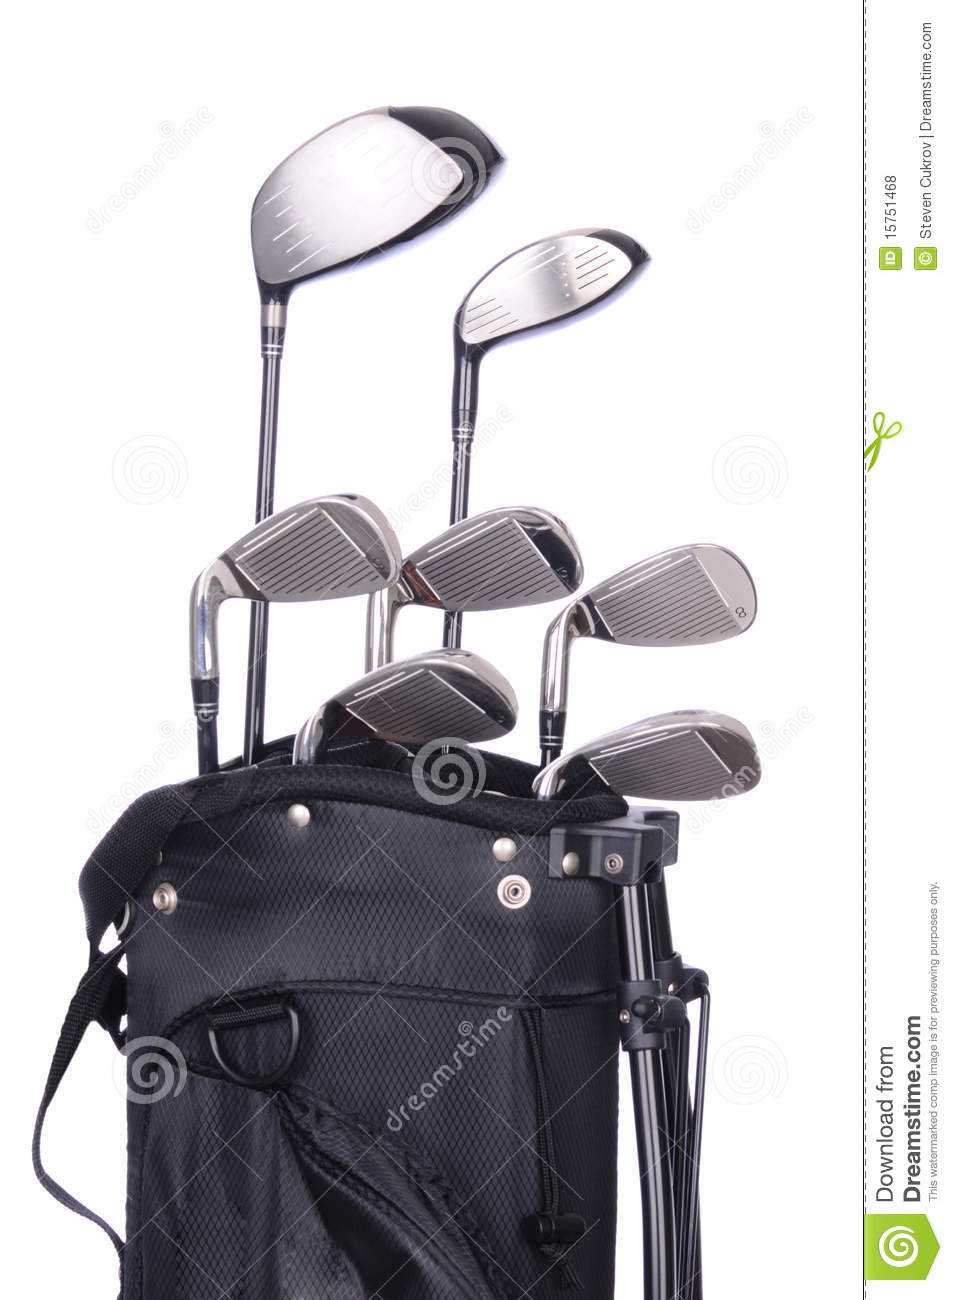 Golf Clubs in Bag